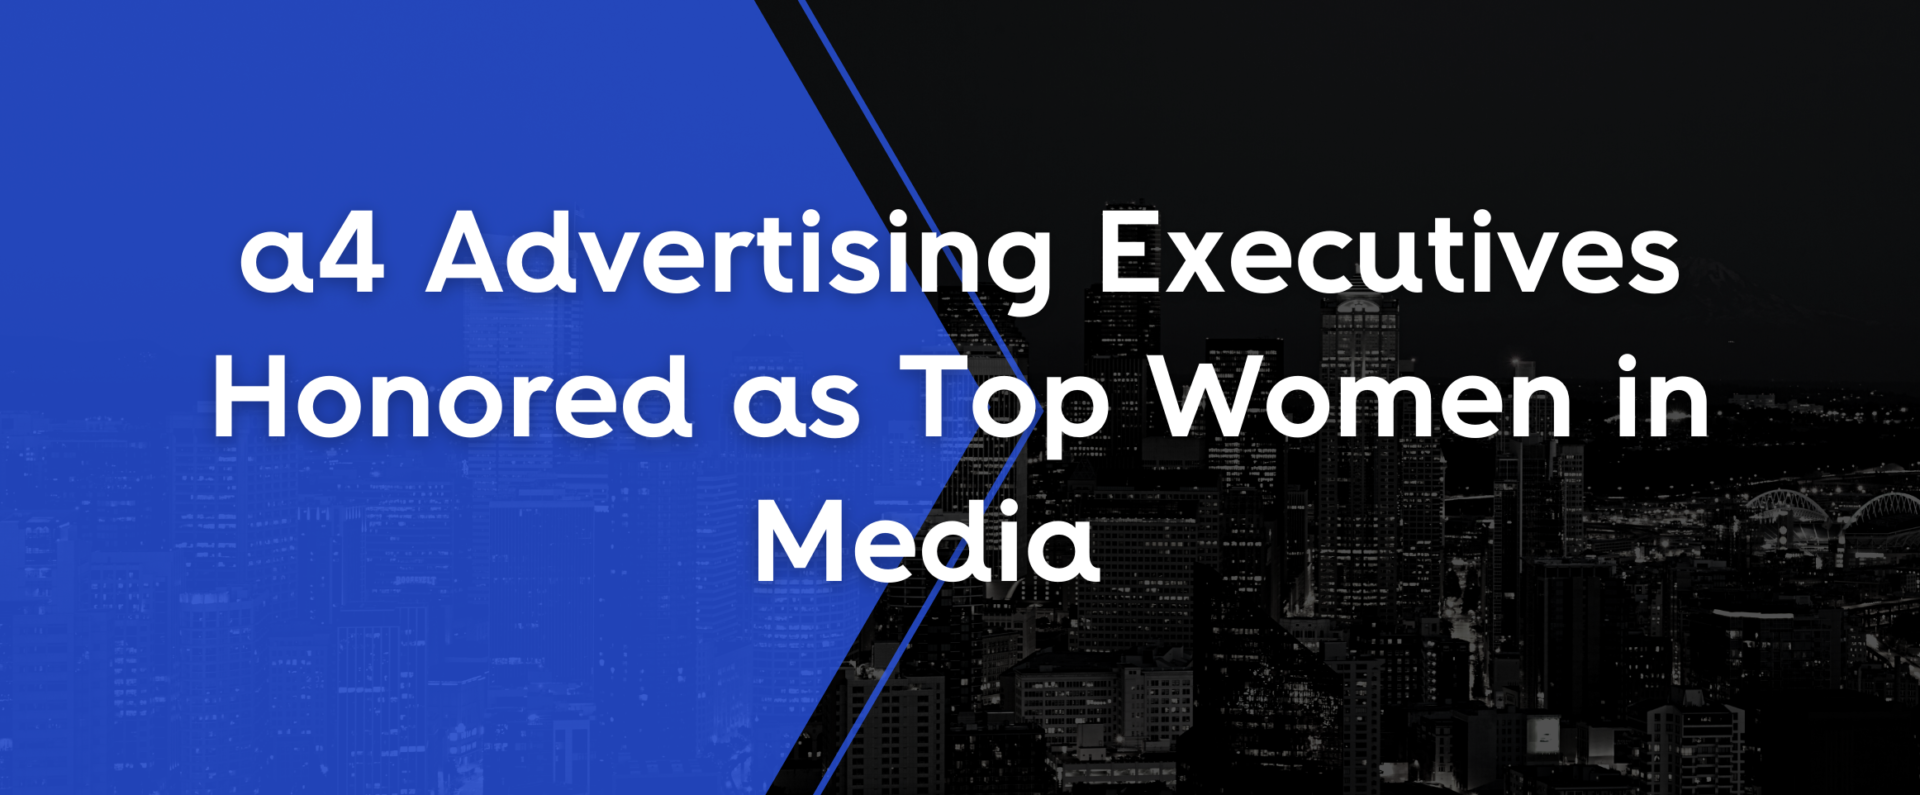 a4 Advertising Executives Honored as Top Women in Media